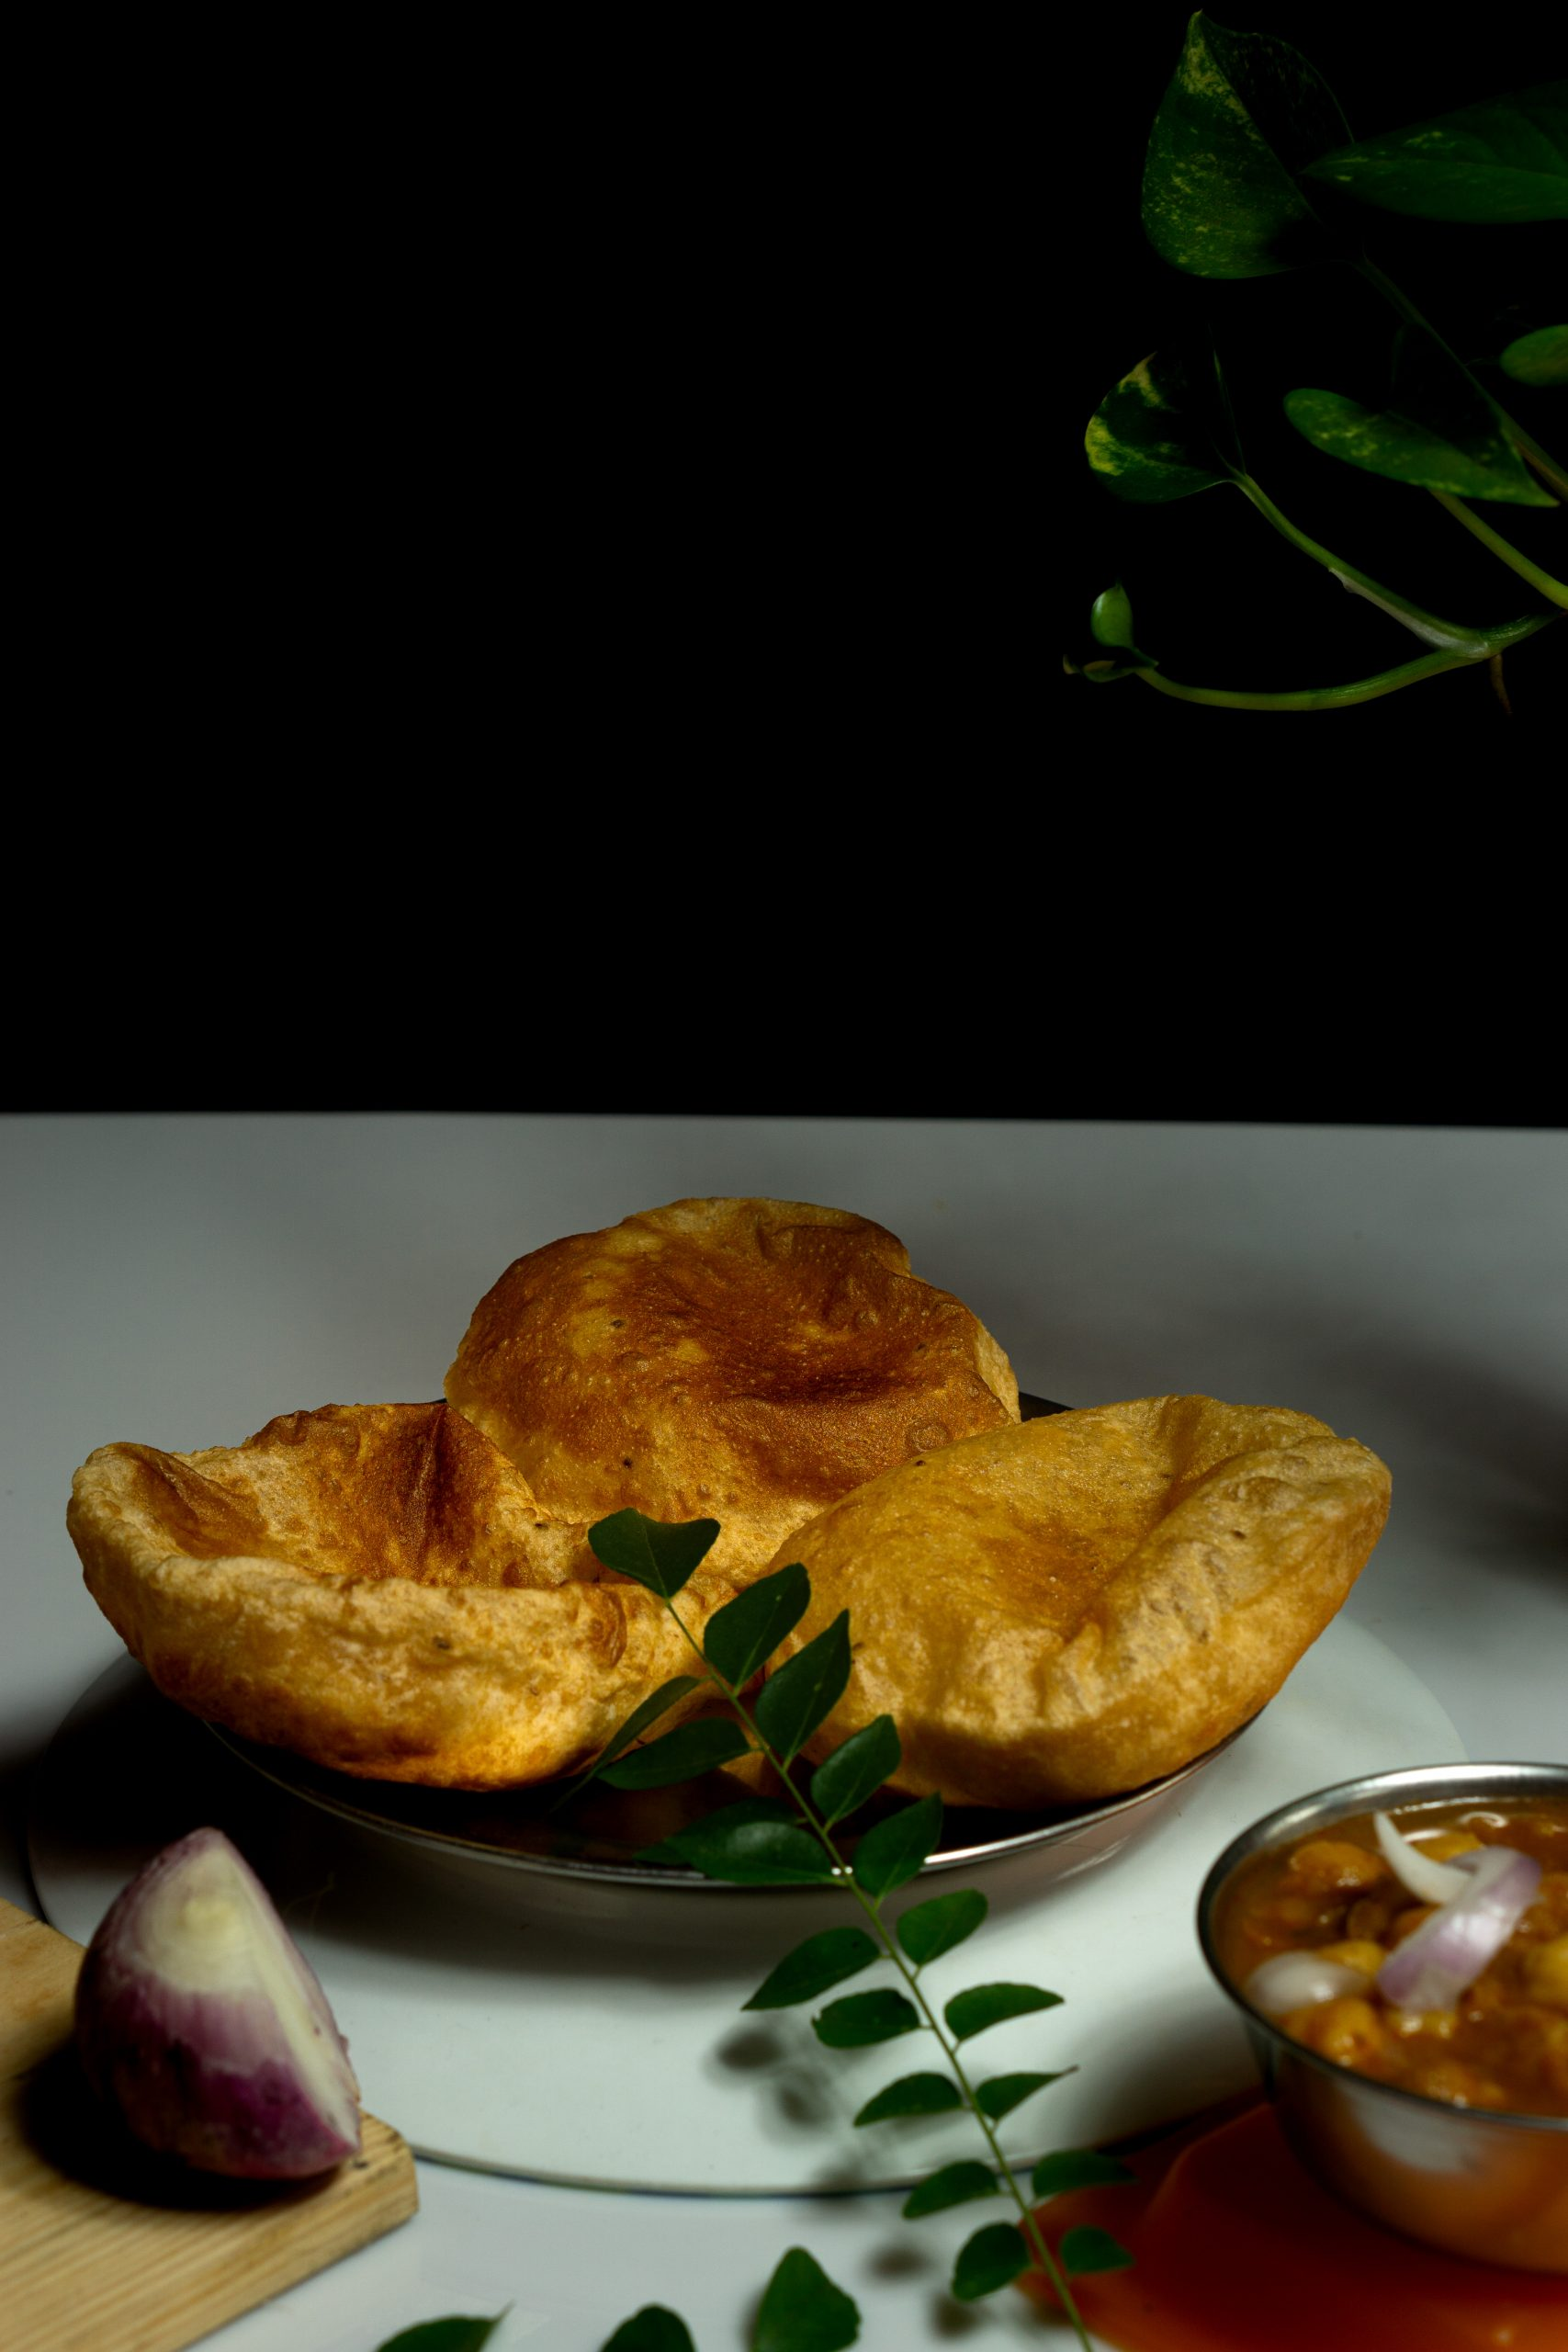 Homemade poori on the table